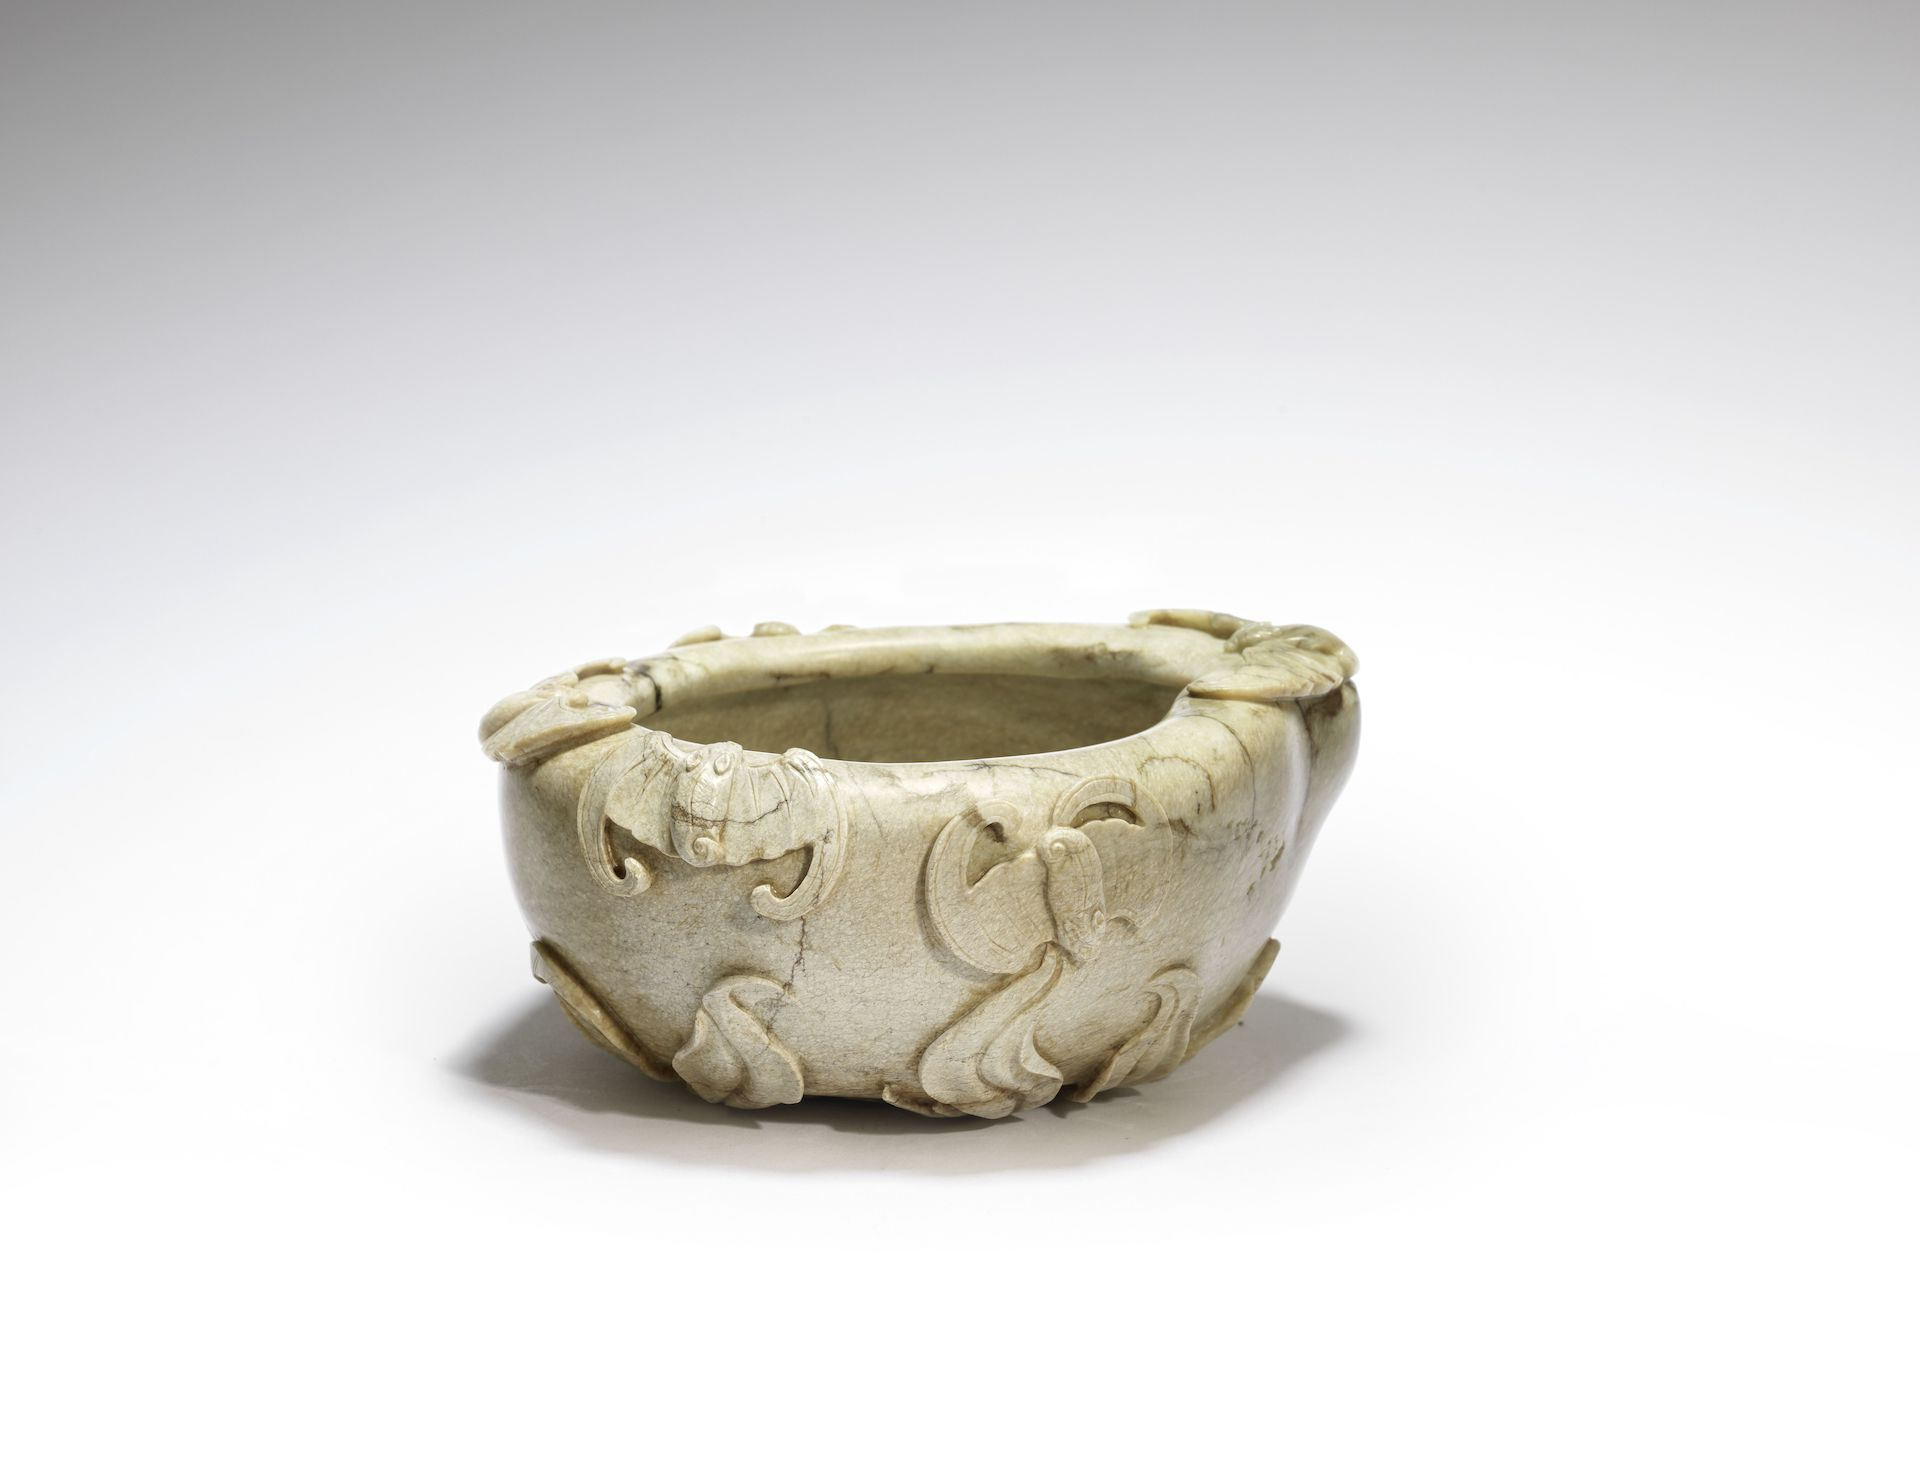 A chicken bone jade 'peach' washer, 18th century. Finely carved with five bats around the rim, and with gnarled, leafy branches to the base and rising up the sides, the stone of an opaque creamy beige-flecked tone, box. 15.5cm (6.1/8in) wide. £7,000-9,000